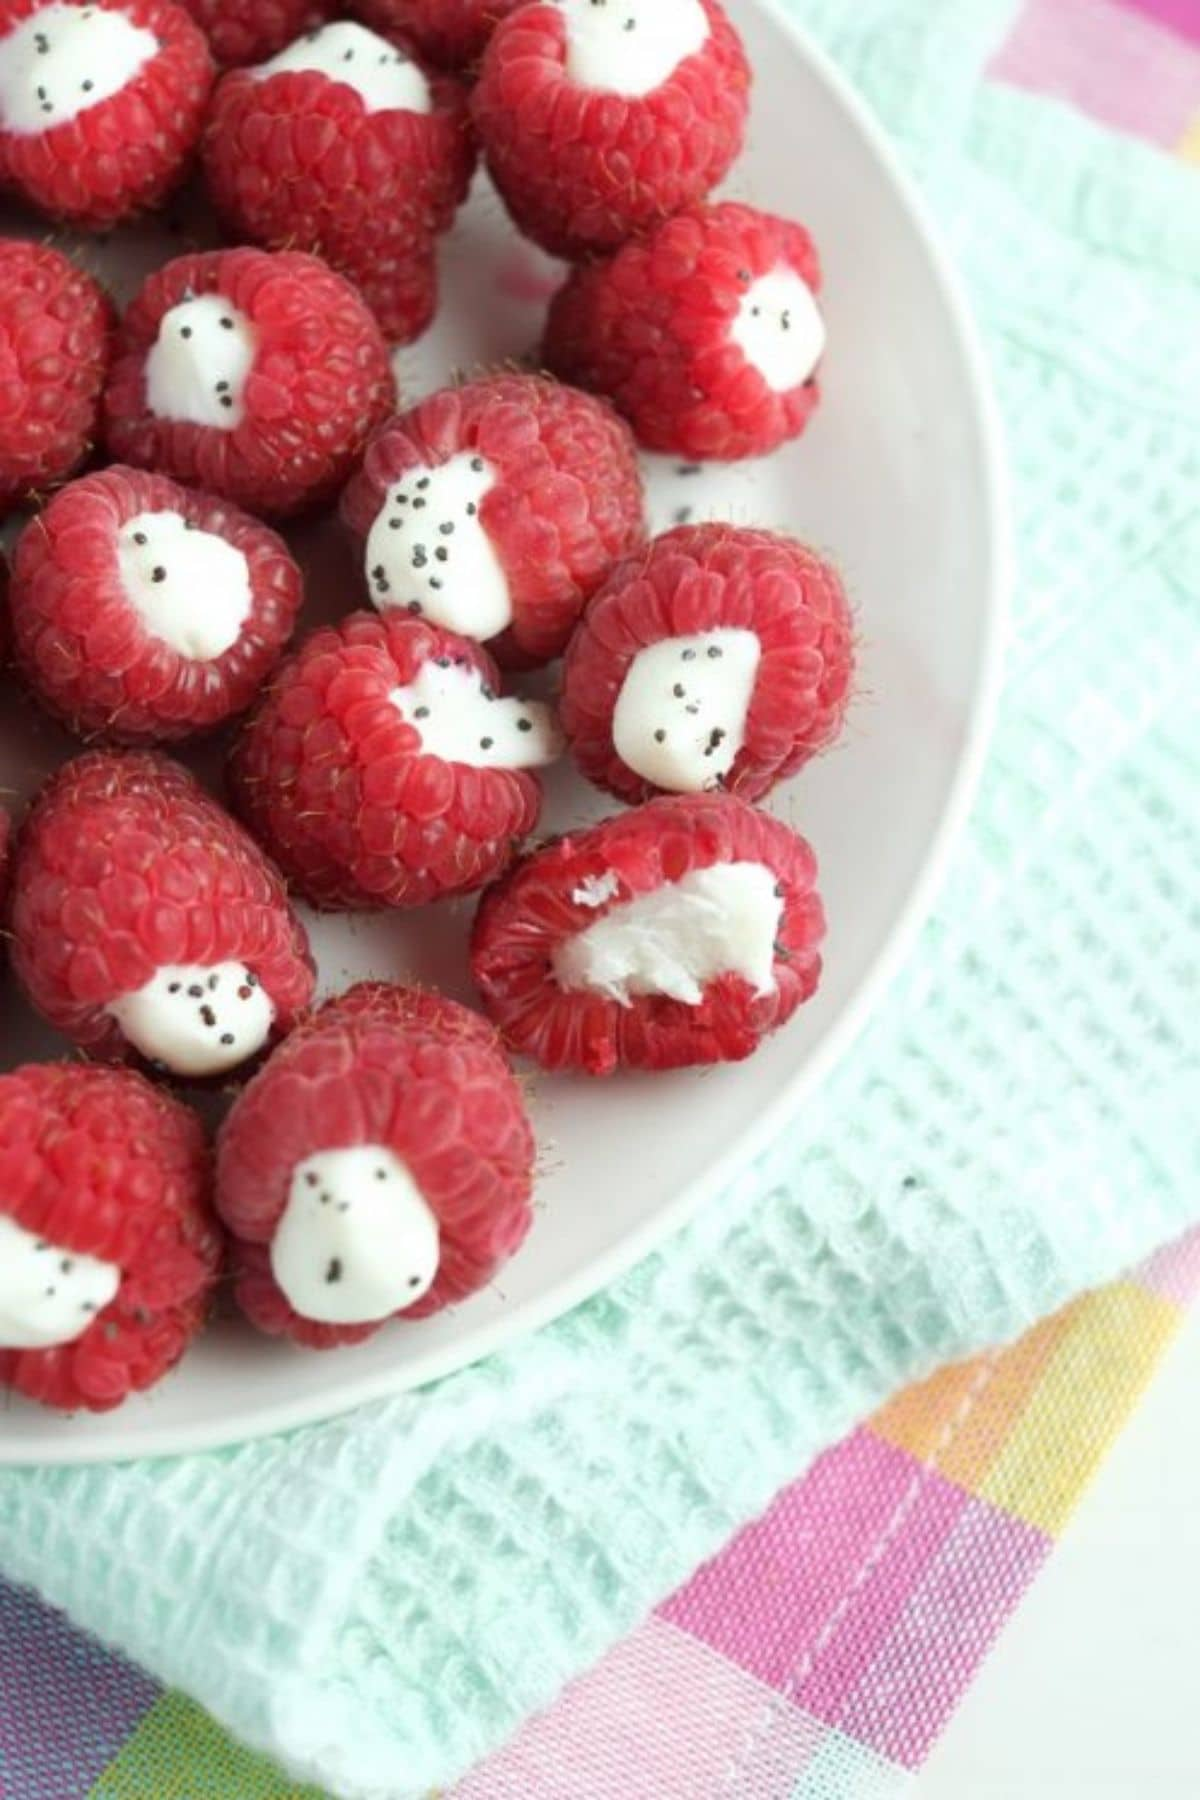 Raspberries with white stuffing on white plate